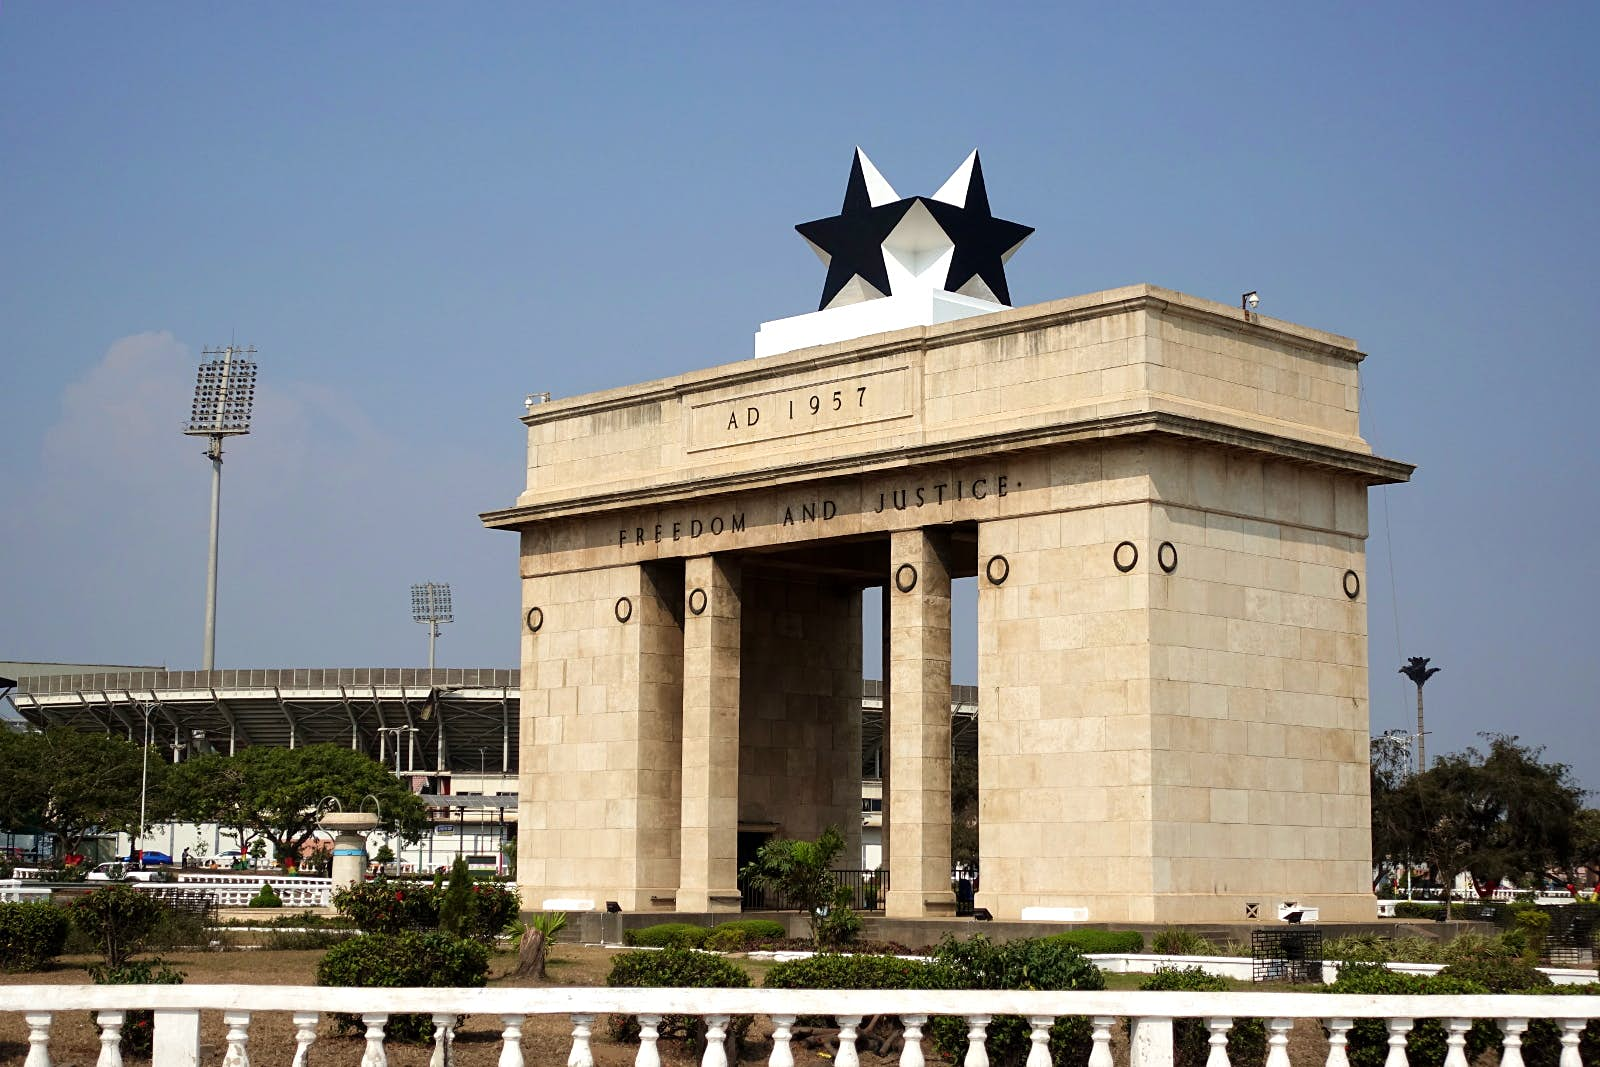 A large, rectangular stone gate, topped by large black stars, stands tall over Independence Square in Accra. The football stadium looms in the distance © Elio Stamm / Lonely Planet